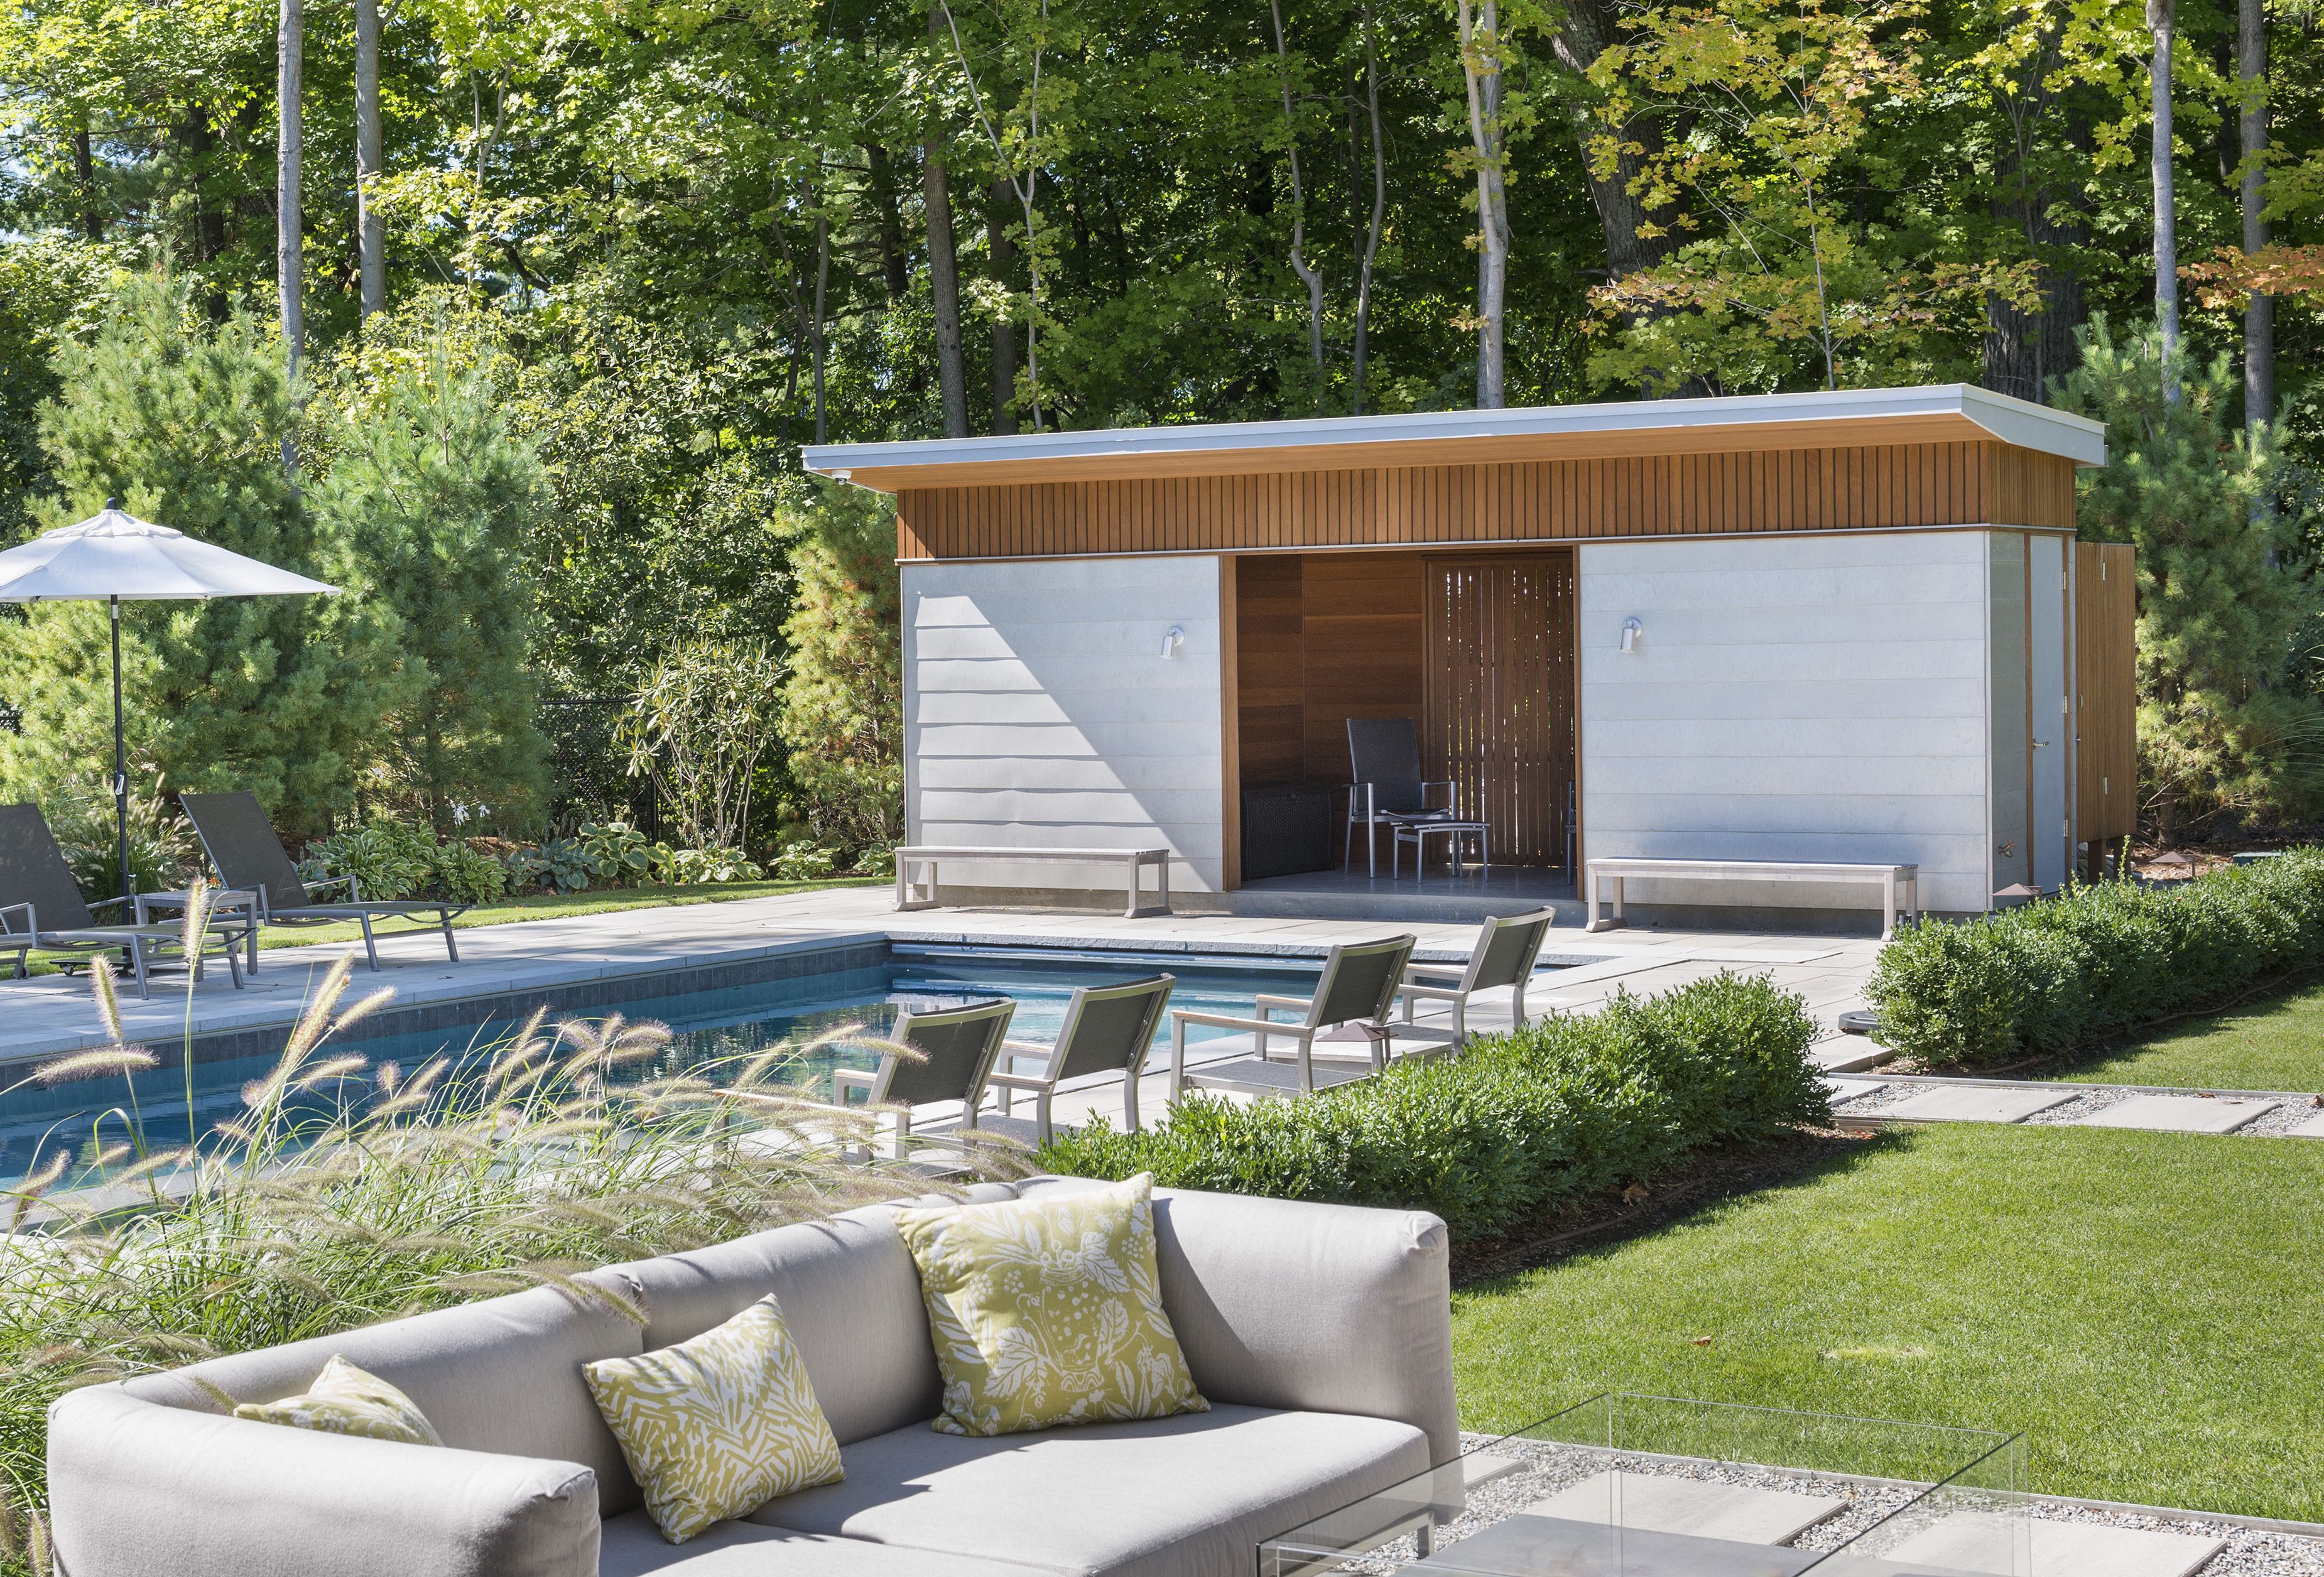 #modern #home #berkshires #outdoorliving #pool #poolhouse Flavin Architects, Nat Rea Photography